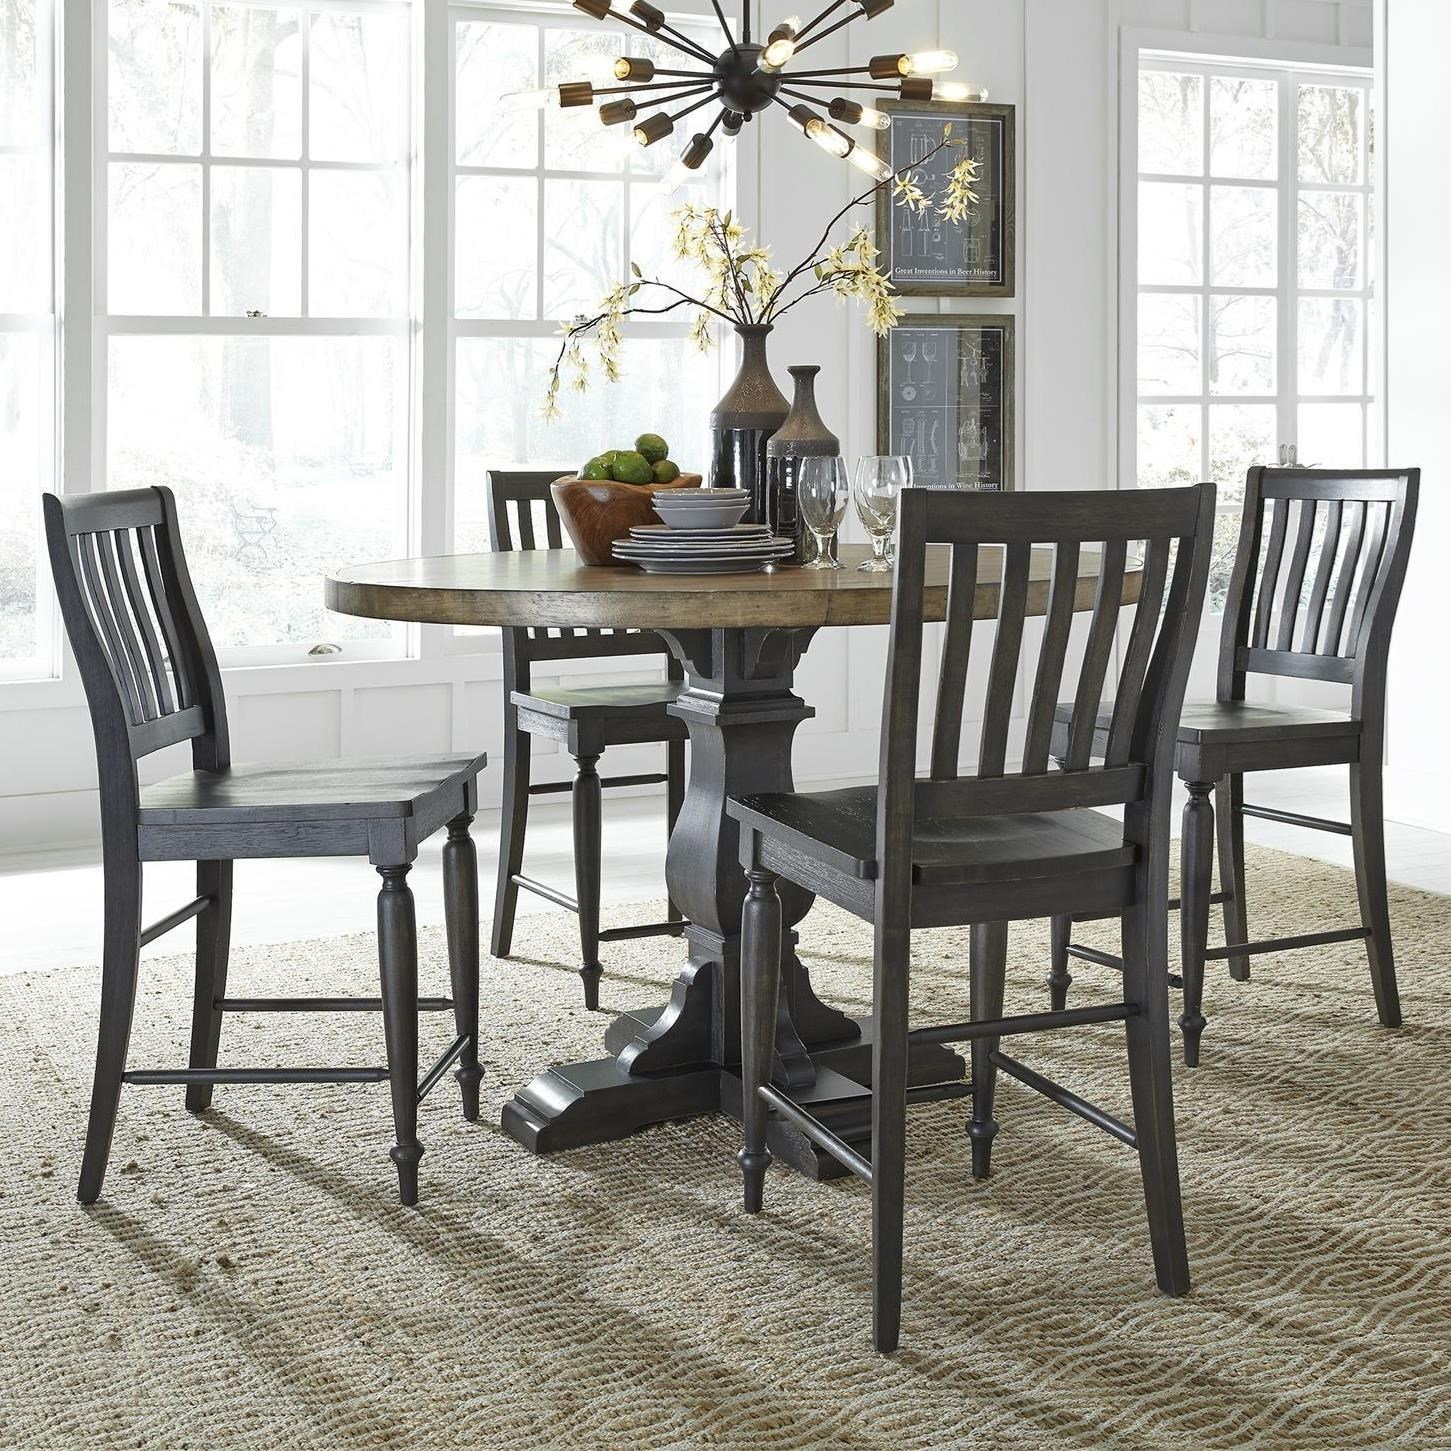 Harvest Home 5-Piece Gathering Table Set by Liberty Furniture at Northeast Factory Direct